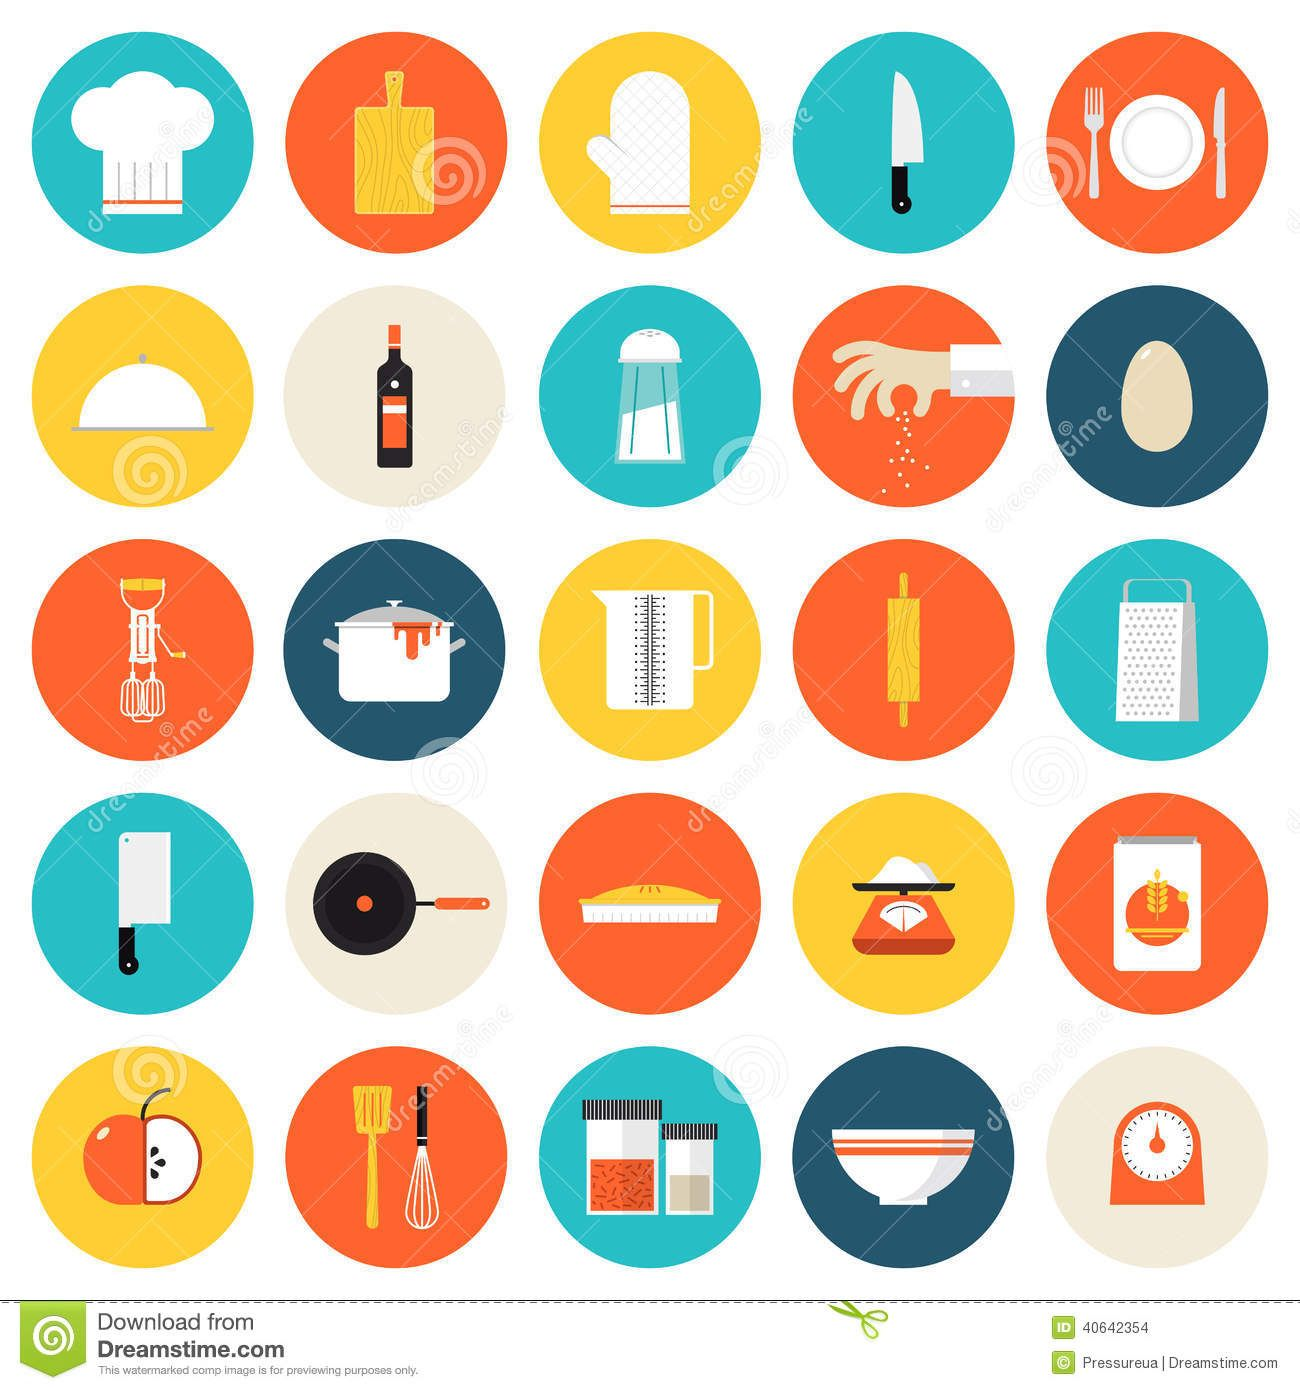 Image result for cooking icon flat design (avec images